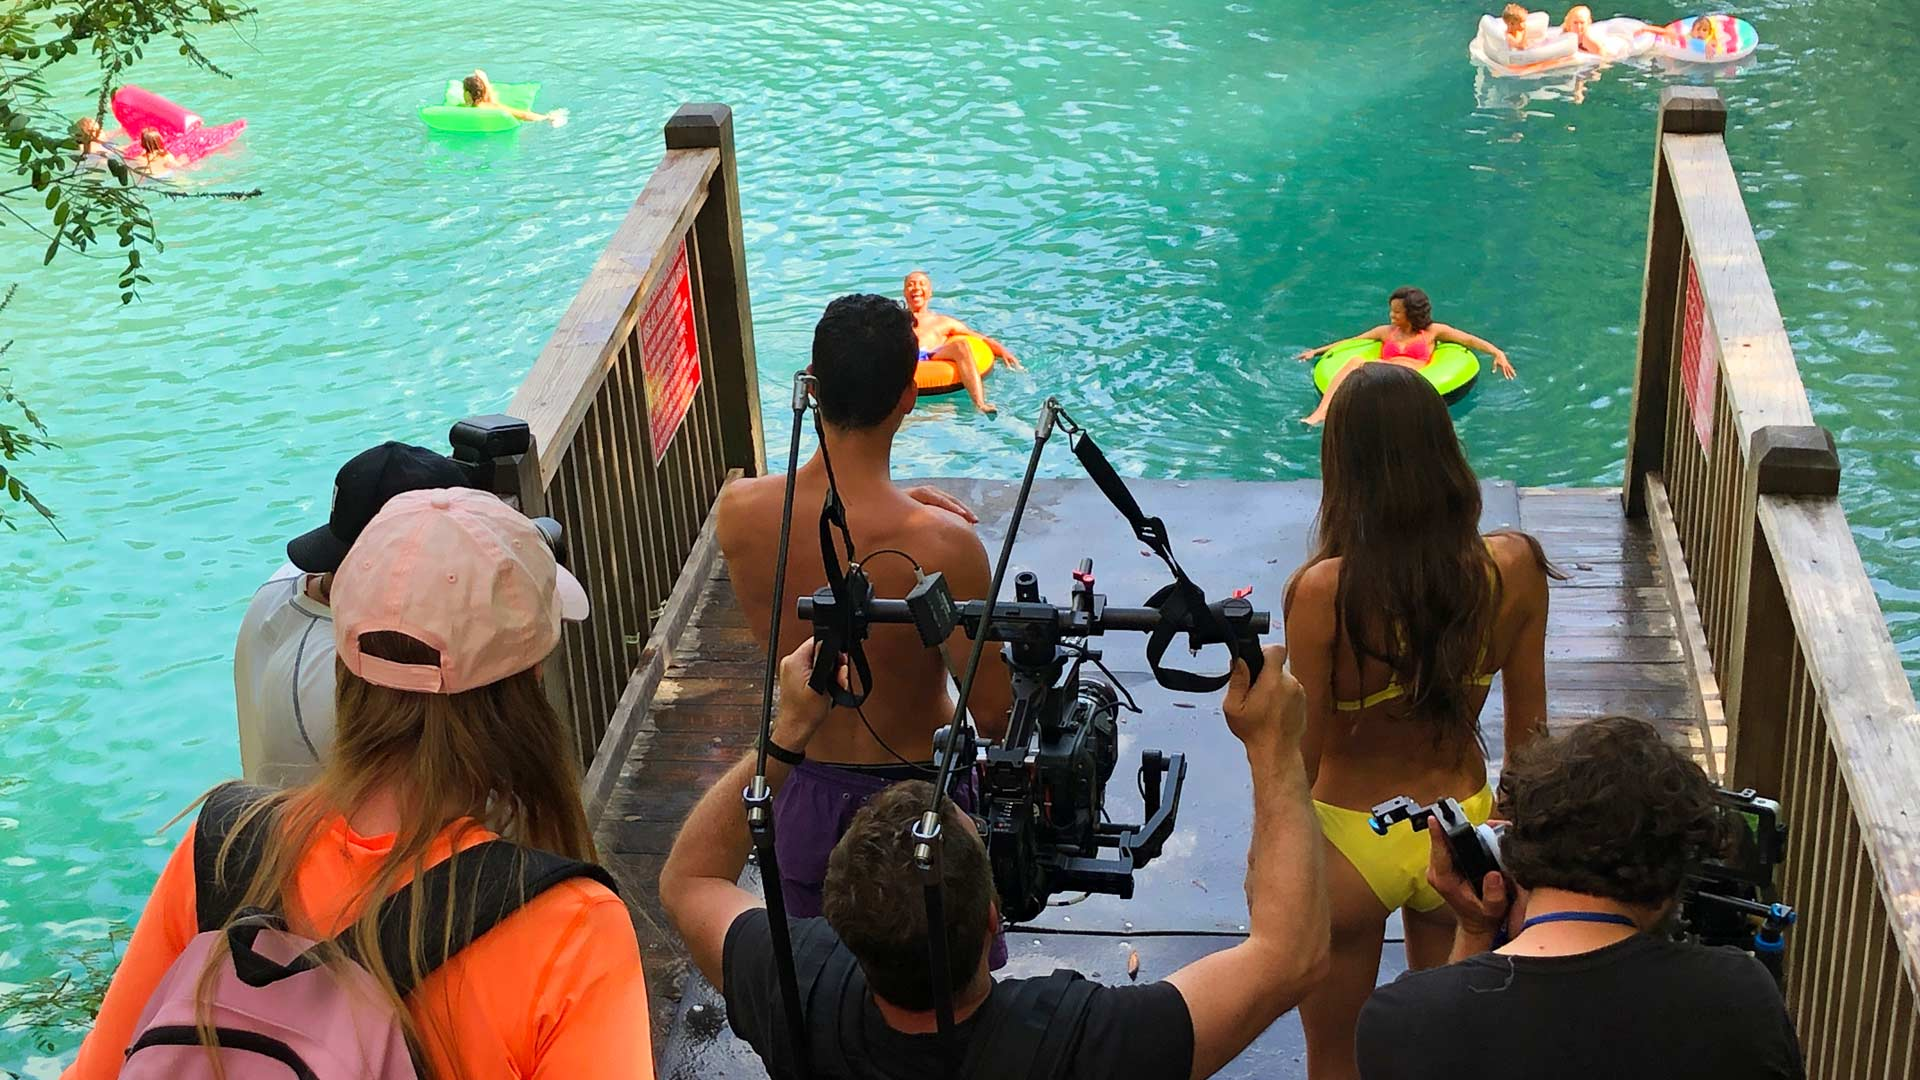 Production team filming couple about to jump into water